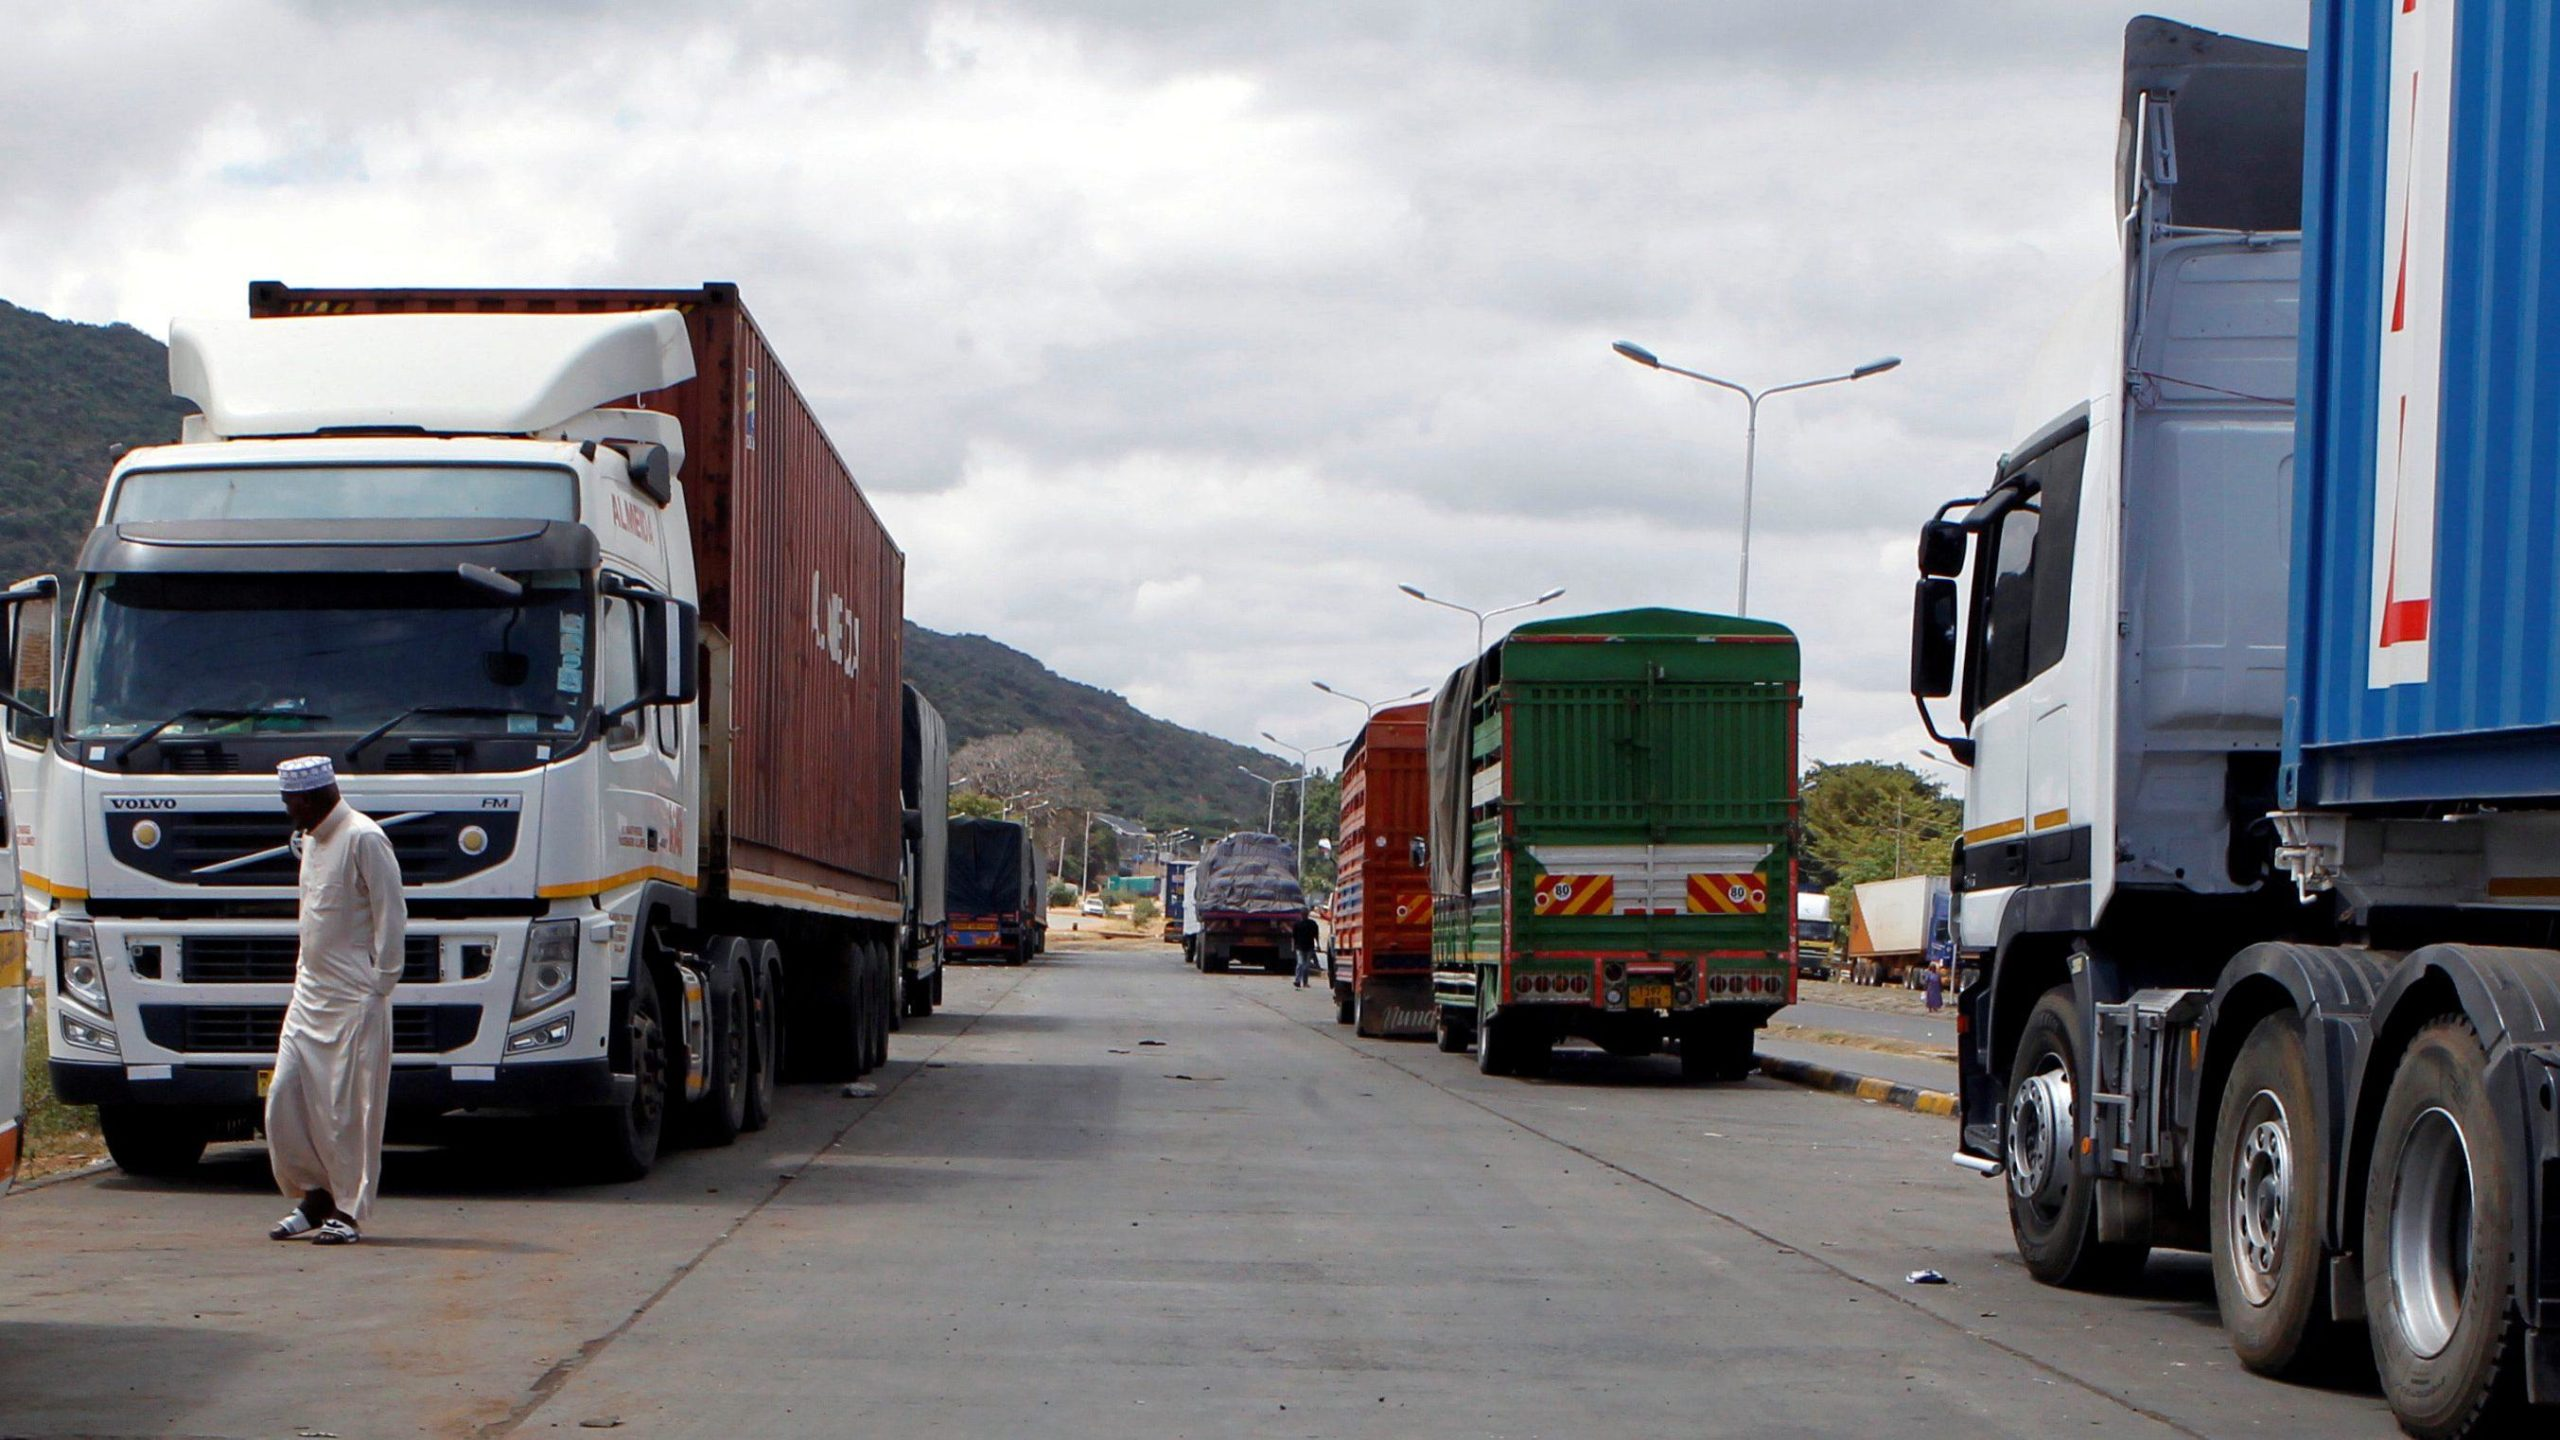 East African truck drivers carrying essential goods cross-border may also be transmitting Covid-19 – Quartz (image)